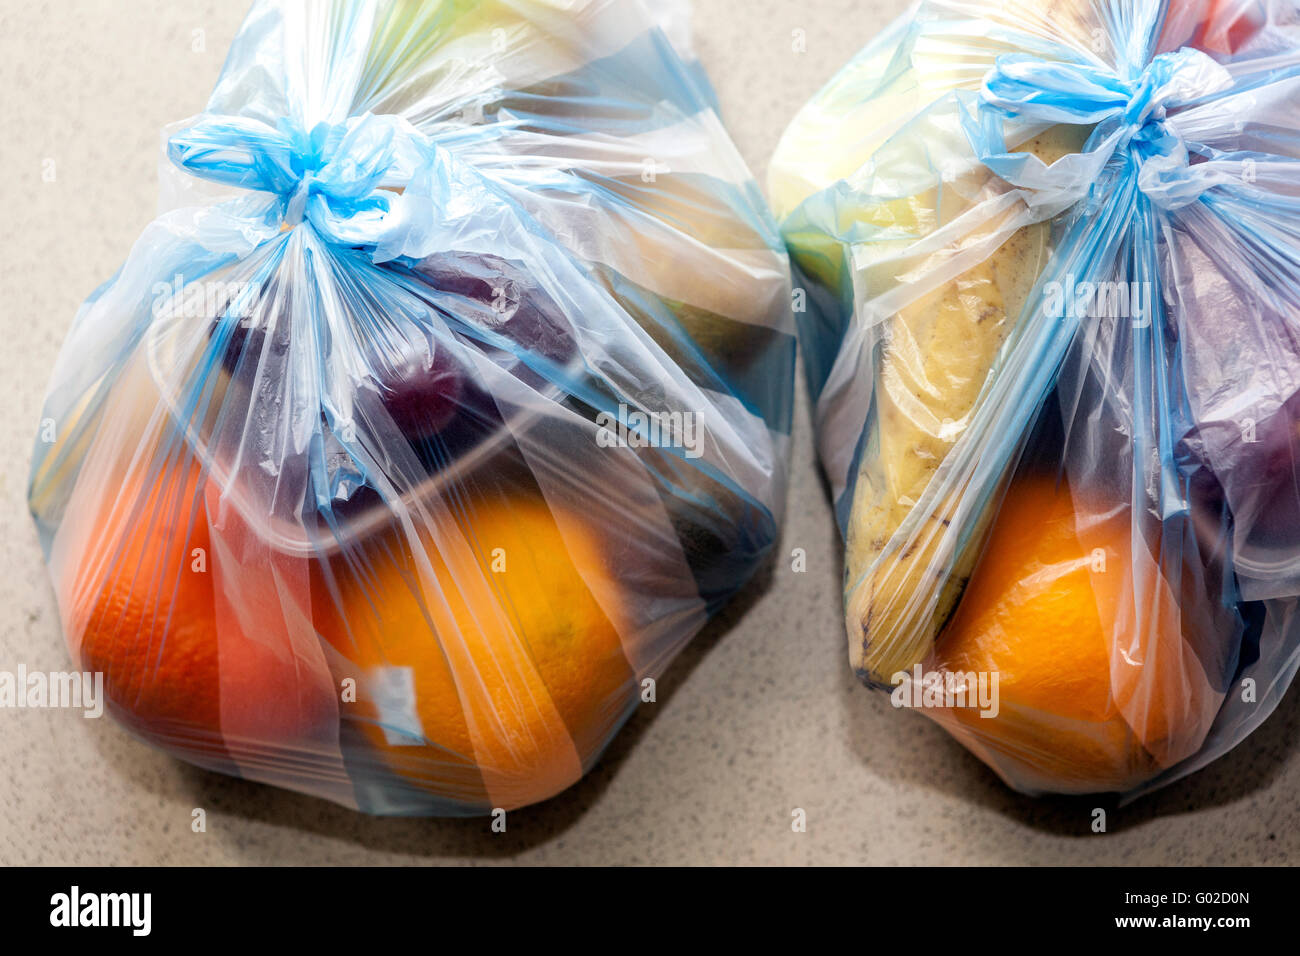 Fruits in two plastic bags - Stock Image